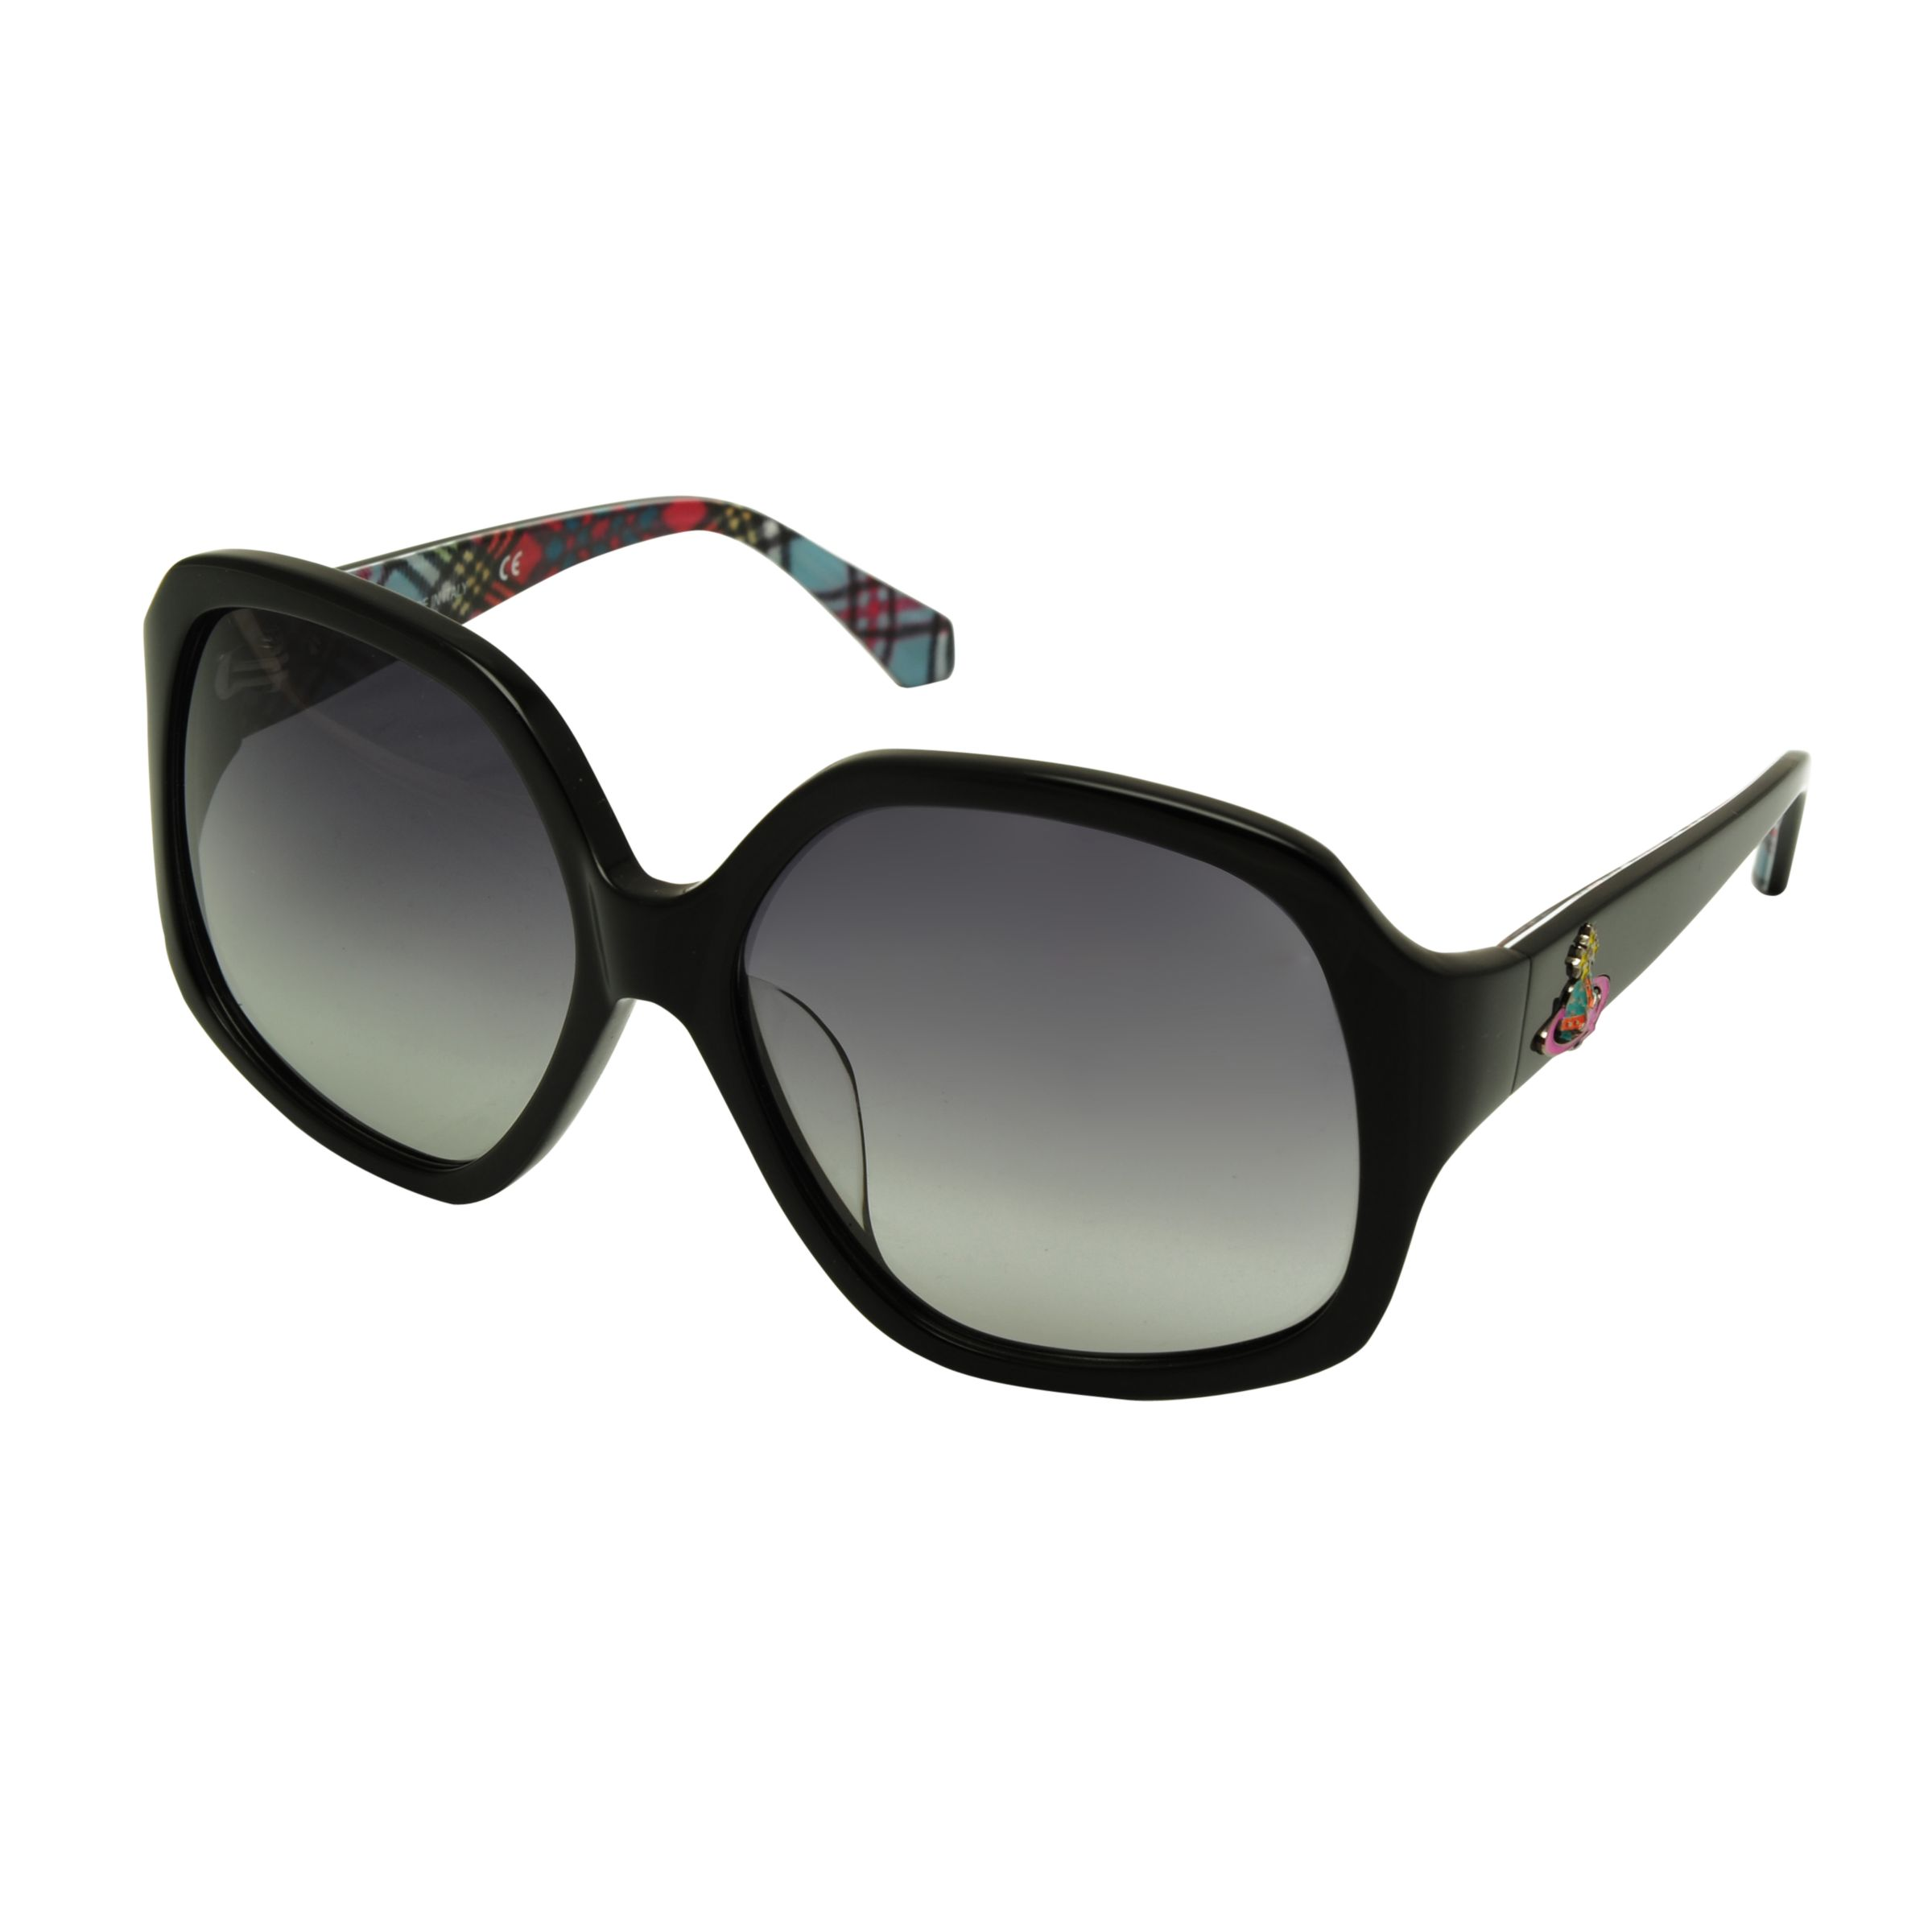 Vivienne Westwood Wide Print Sunglasses, Black